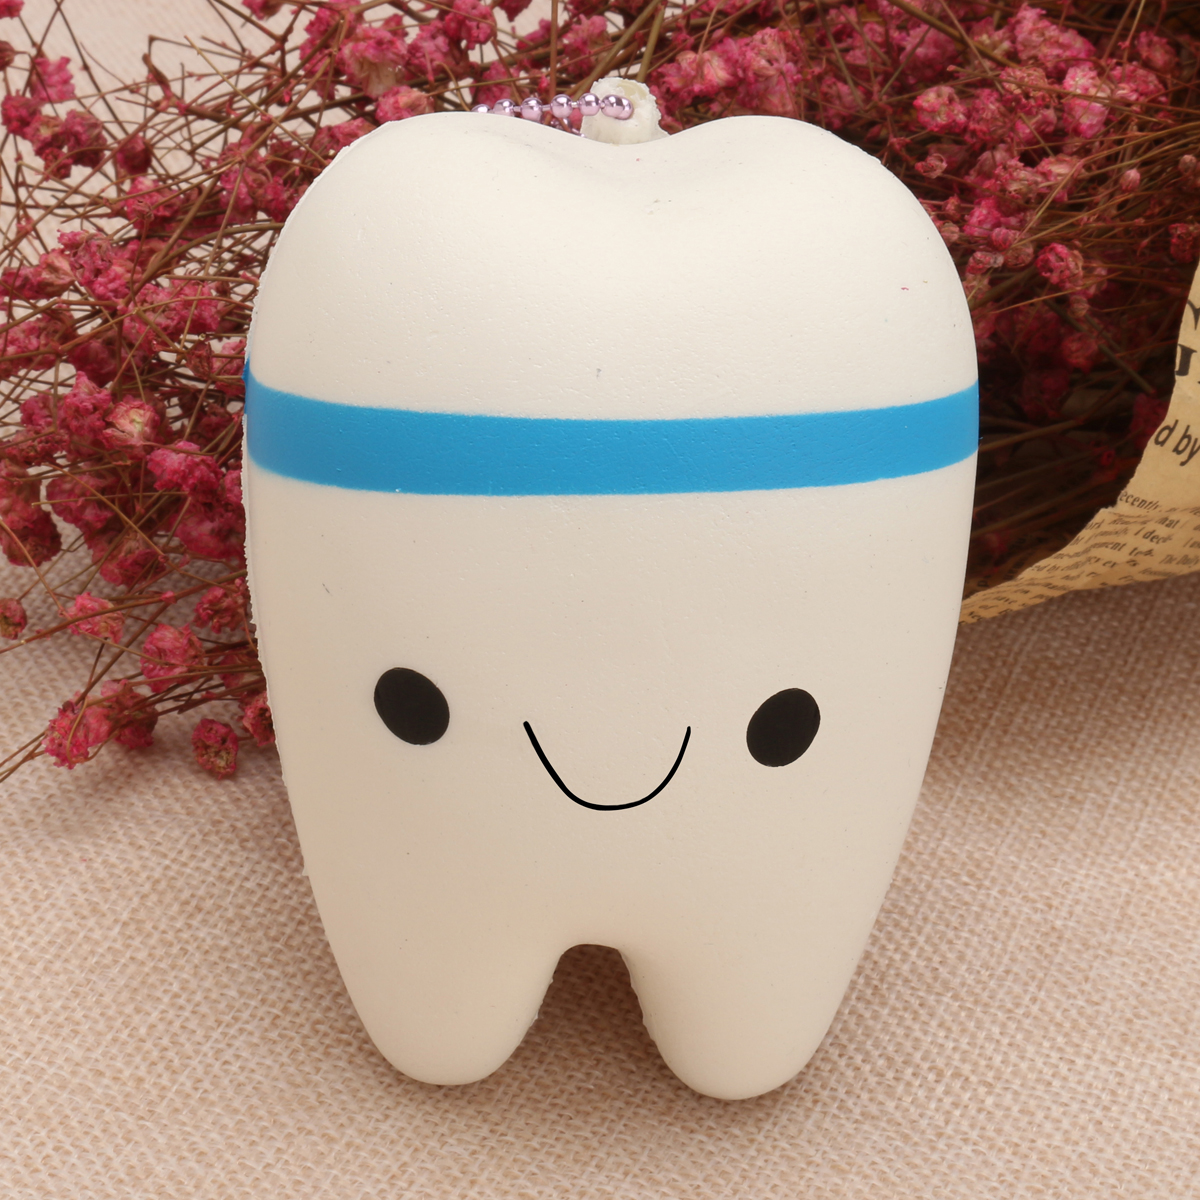 Squishy Teeth 10cm Blue Pink Random Soft Slow Rising Collection Gift Decor Toy